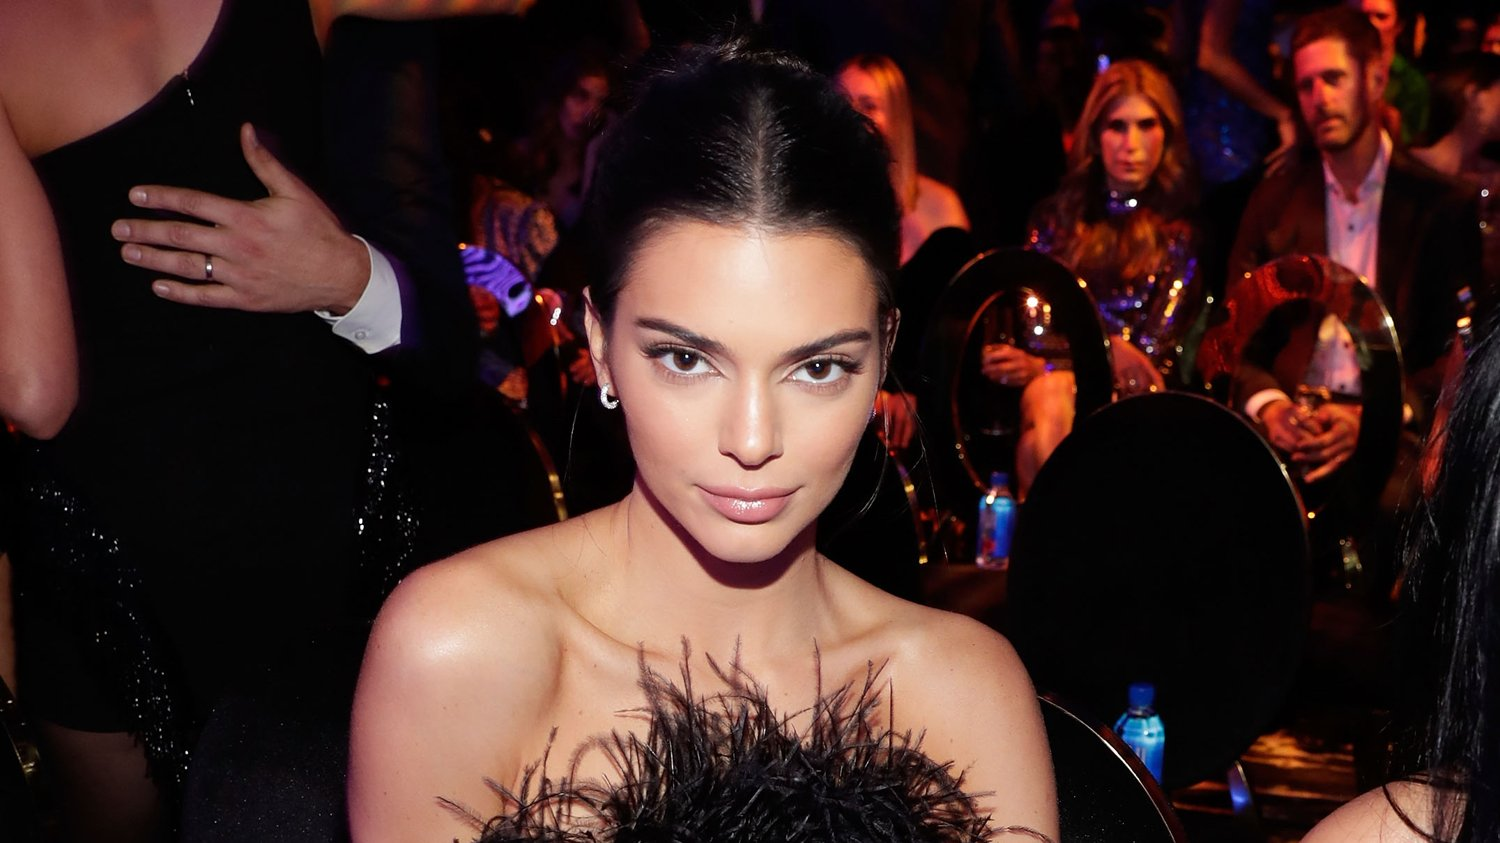 Kendall Jenner Urges Fans to Be More Open About Insecurities